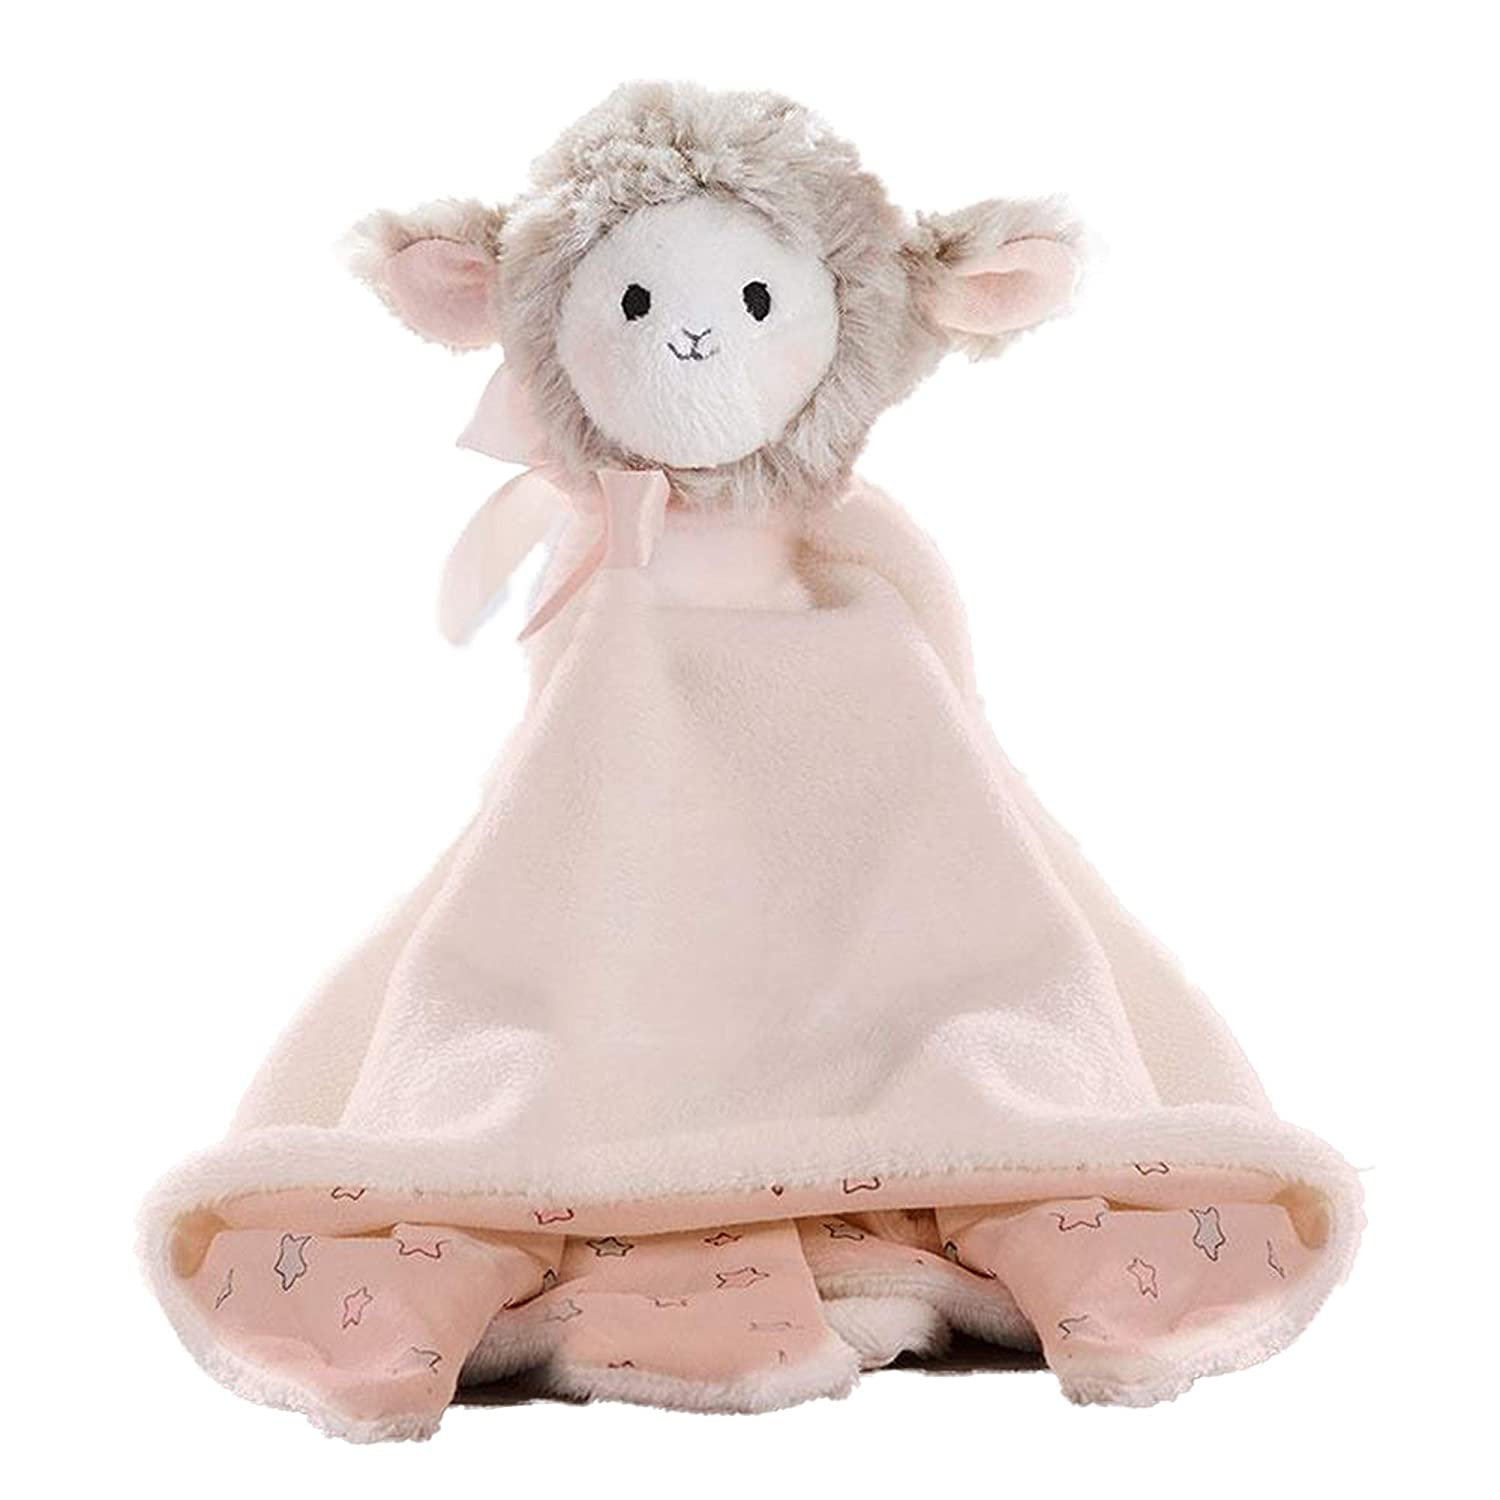 Lil Llama Plush Blanket for Baby - Polyester Soft Boa and Cotton Jersey Fabrics - Cute Security Blankets in 3 Assorted Designs (Llama)